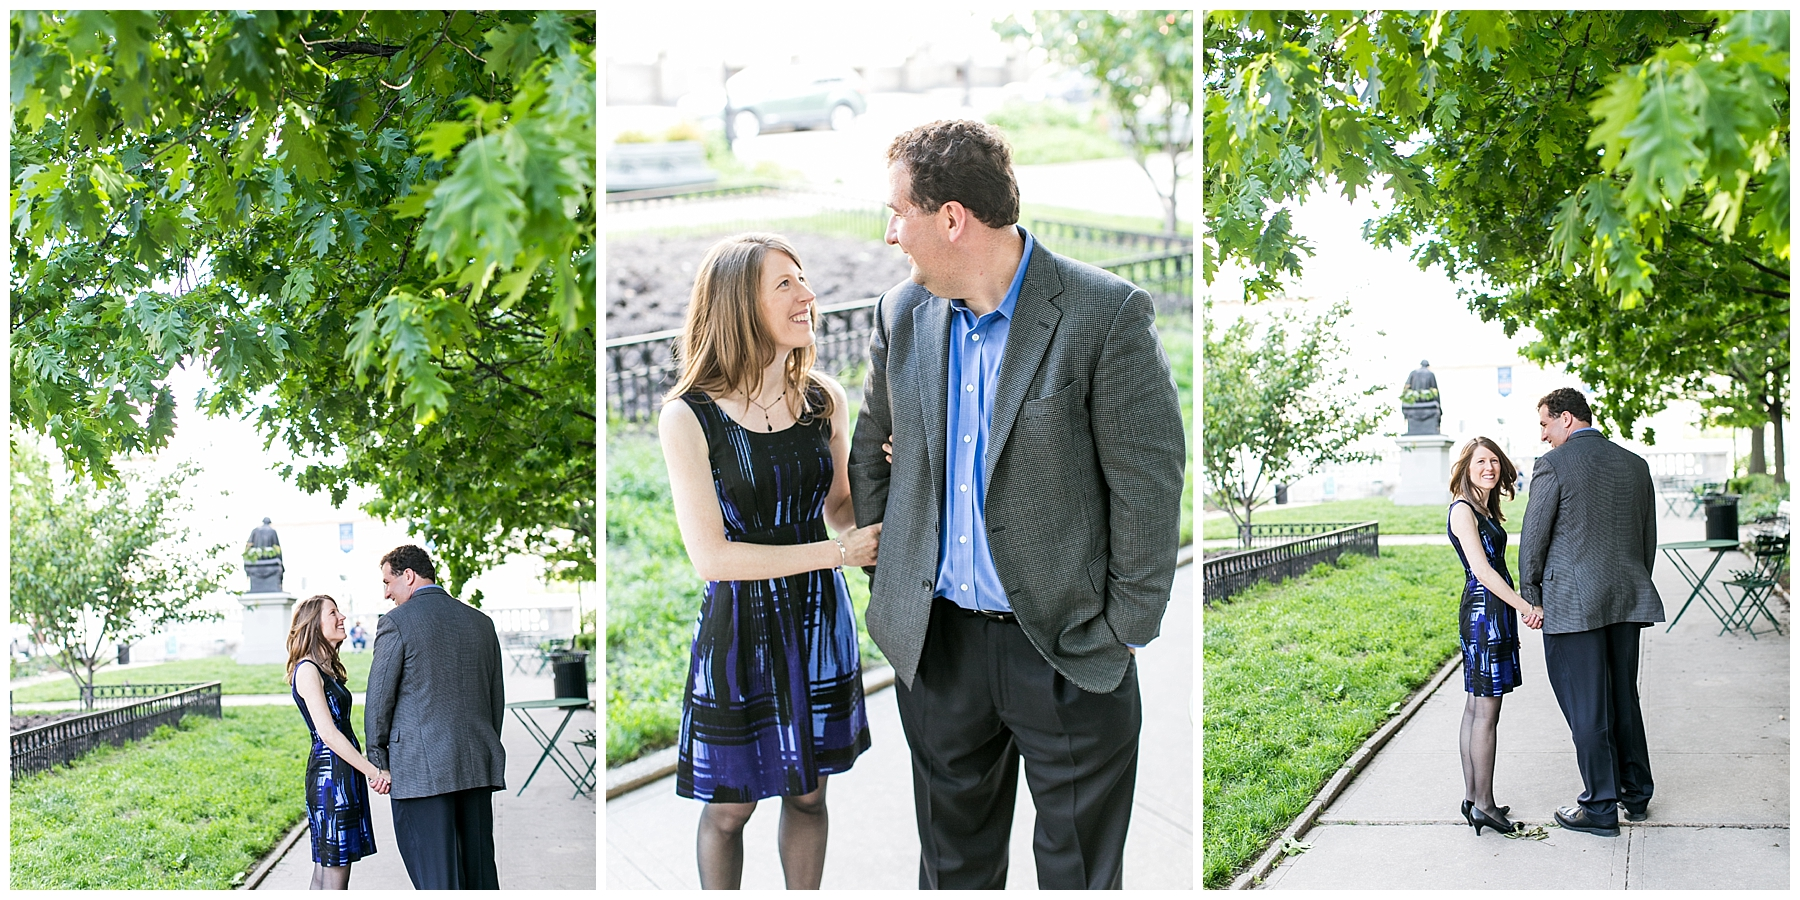 Tom Melissa Mt. Vernon Baltimore Engagement Session Living Radiant Photography photos_0010.jpg